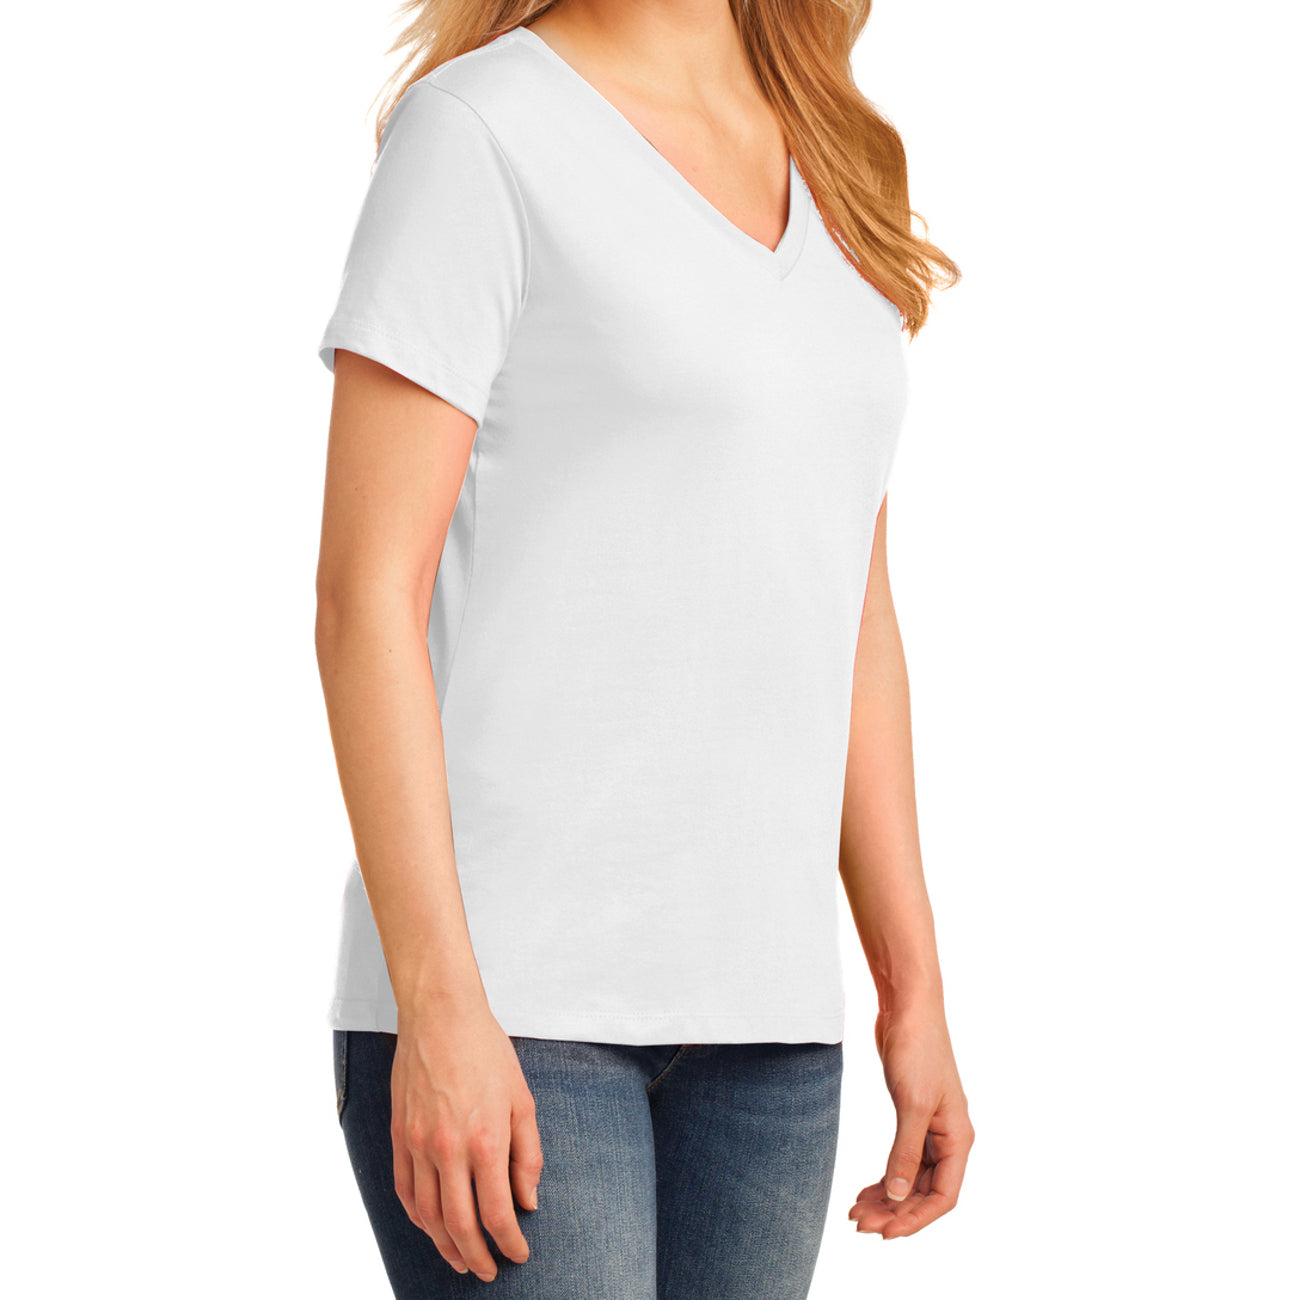 Women's Core Cotton V-Neck Tee - White - Side